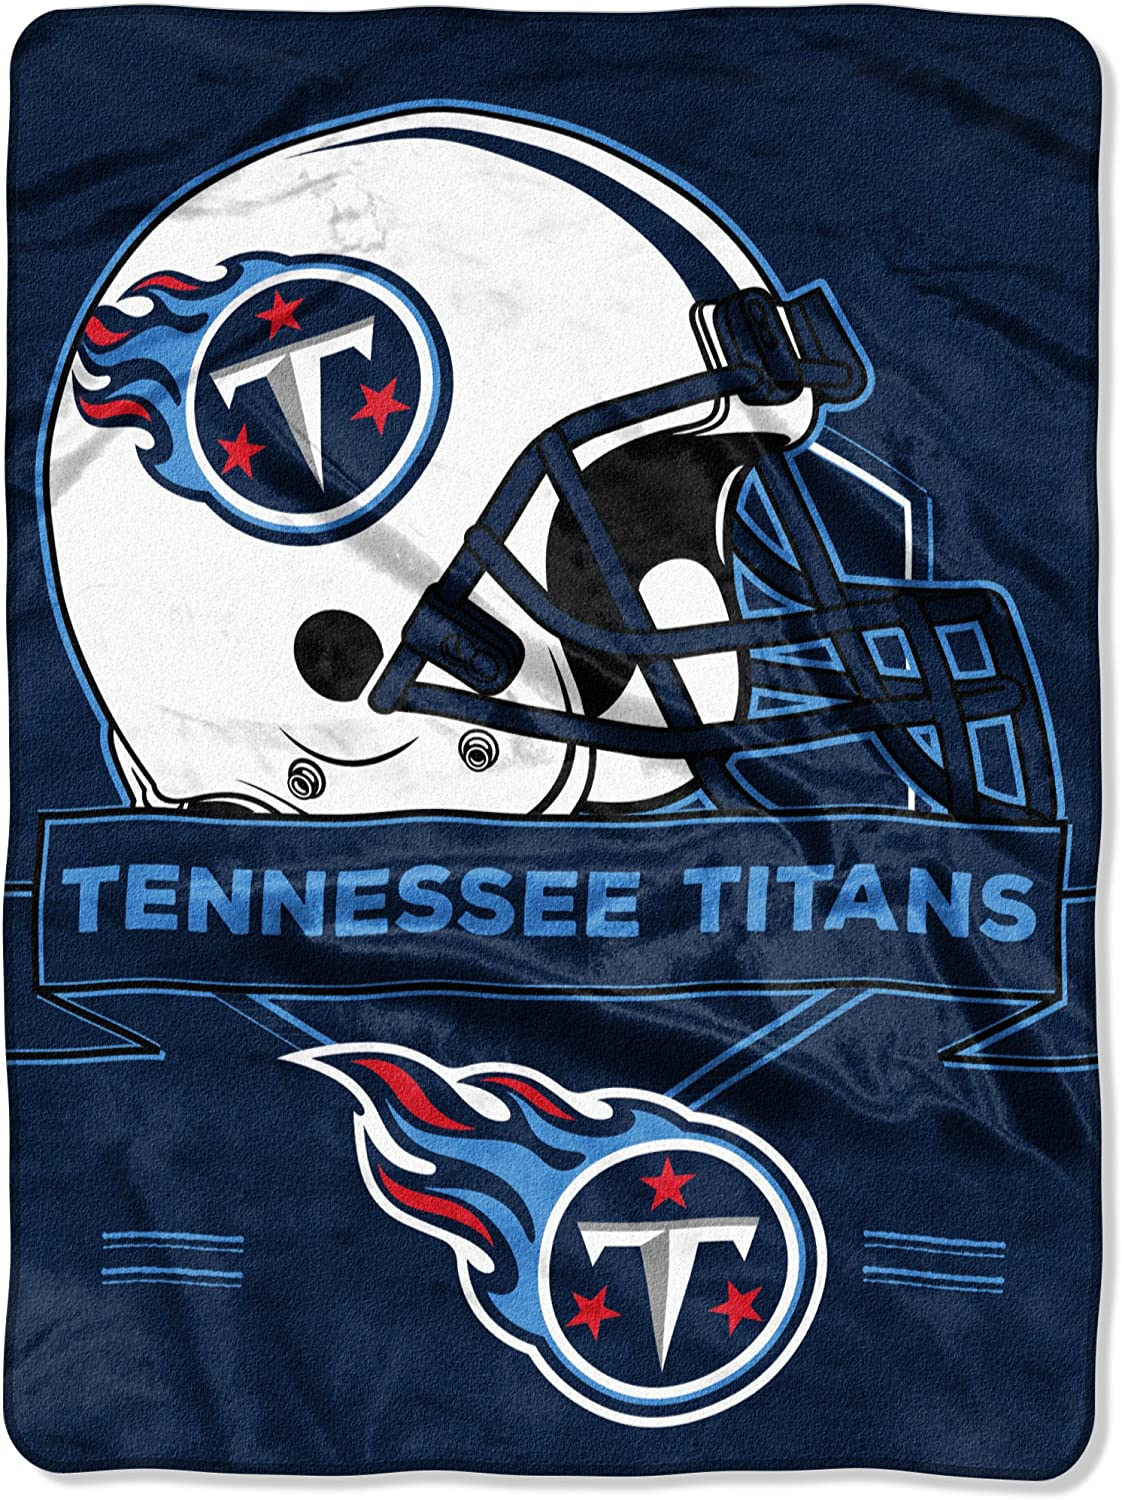 Officially Licensed Nfl Throw Tennessee Titans Fleece Blanket